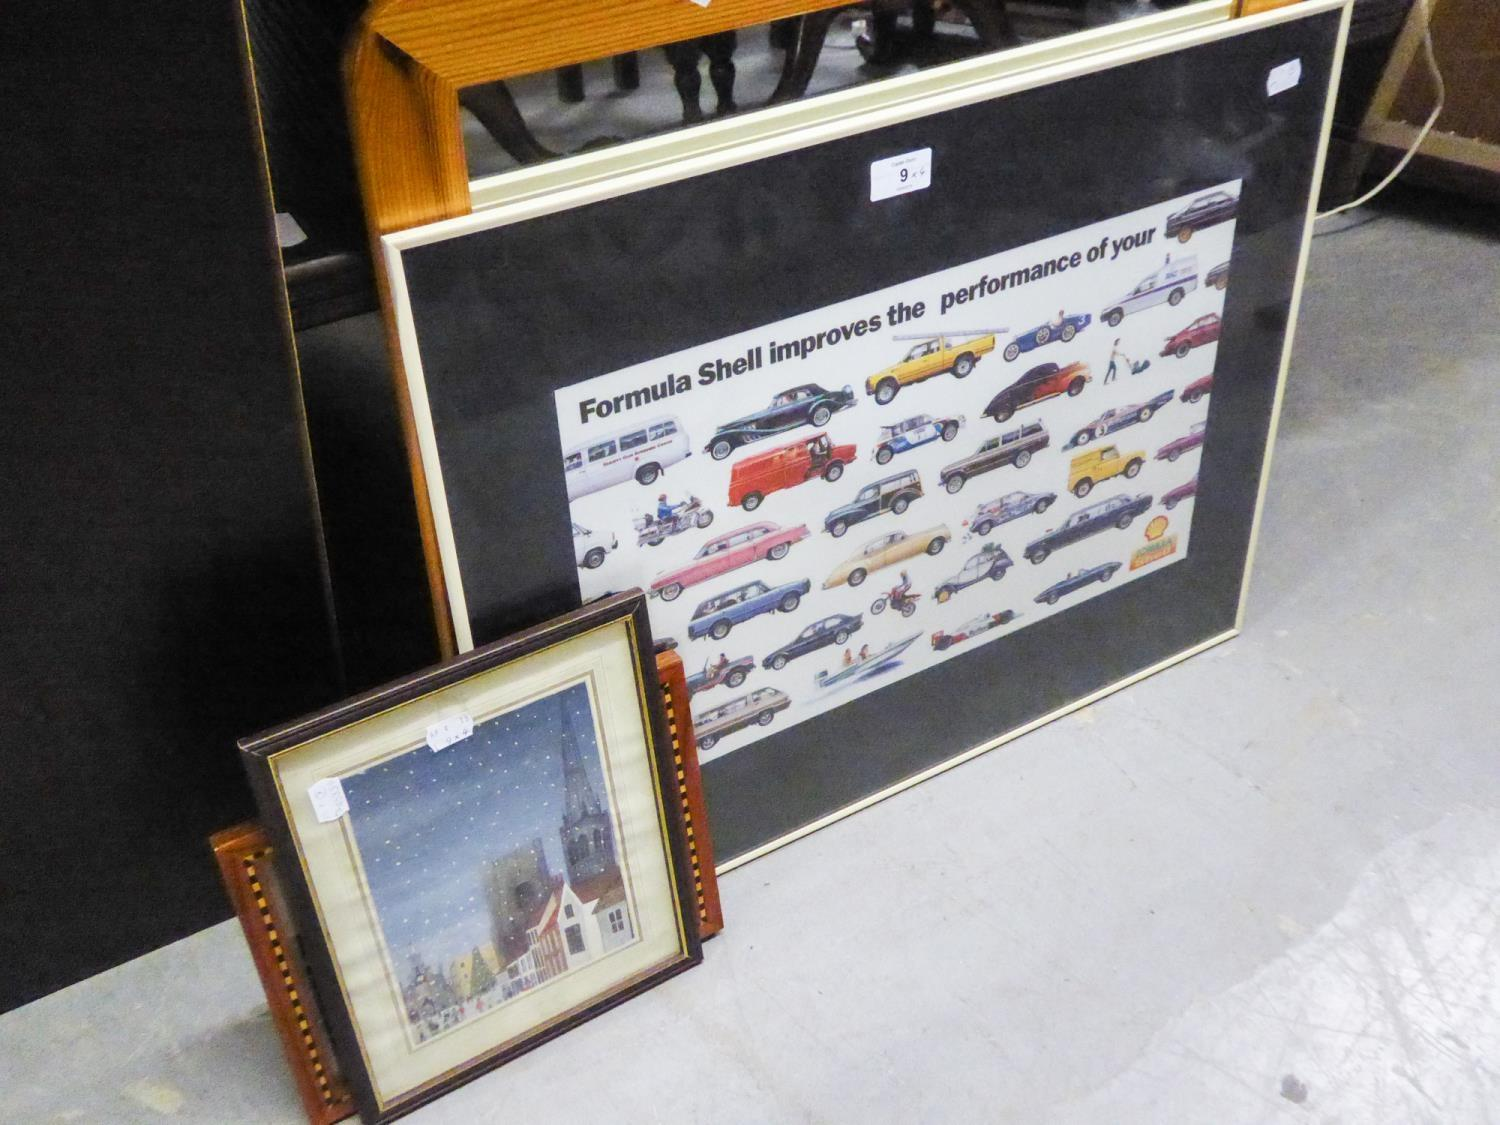 A COLOUR PRINT 'FORMULA SHELL IMPROVES THE PERFORMANCE OF YOUR', A PINE FRAMED MIRROR AND TWO